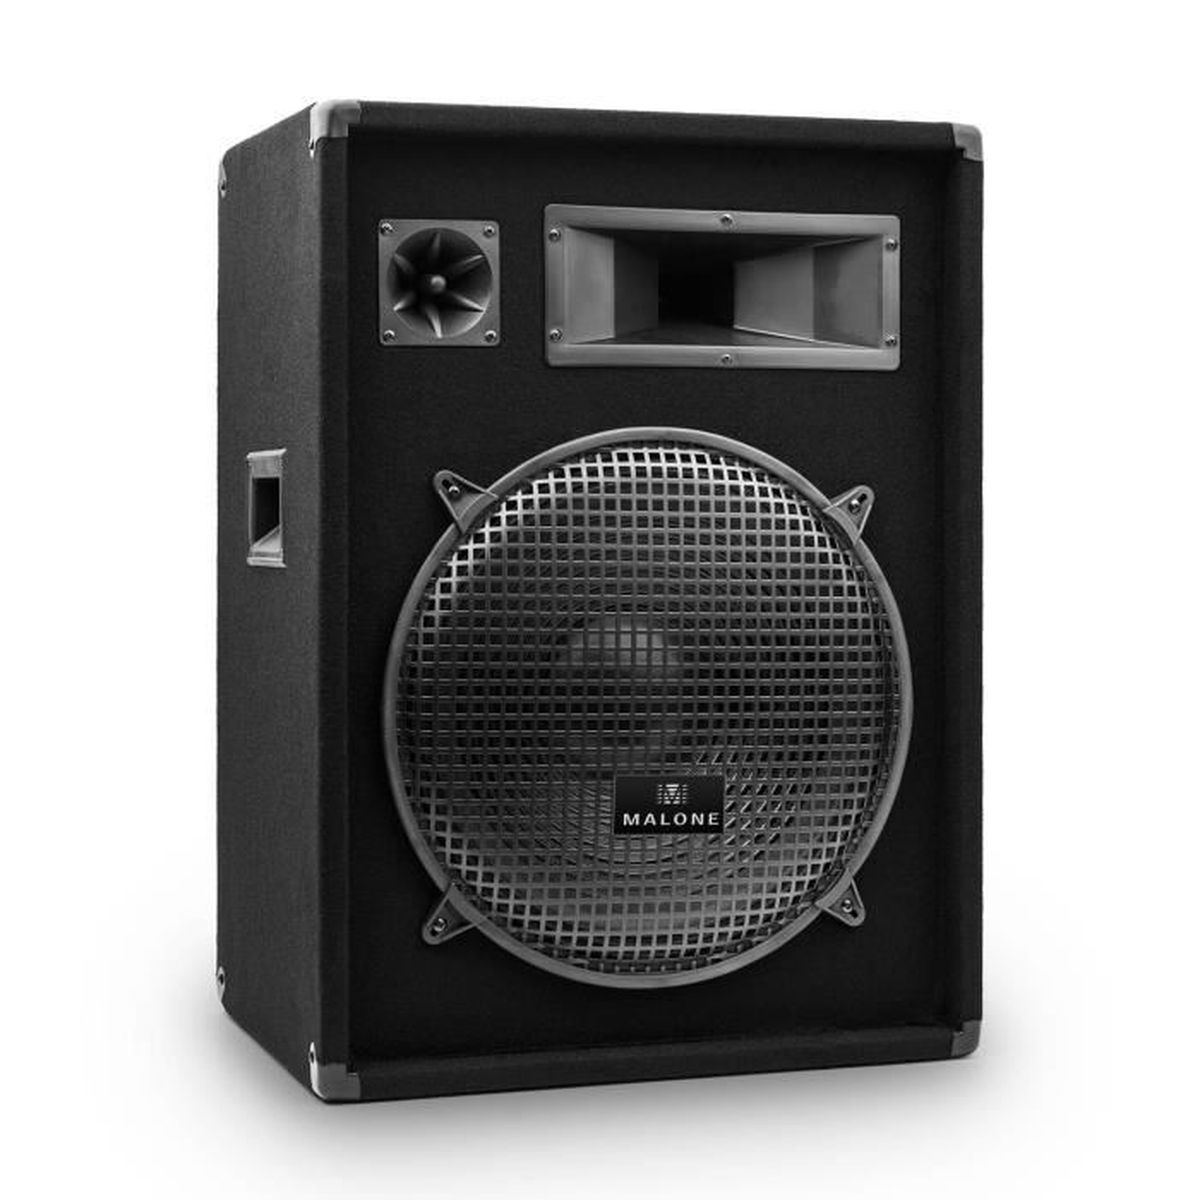 enceinte dj 15 3 voies achat vente enceinte dj 15 3 voies pas cher cdiscount. Black Bedroom Furniture Sets. Home Design Ideas